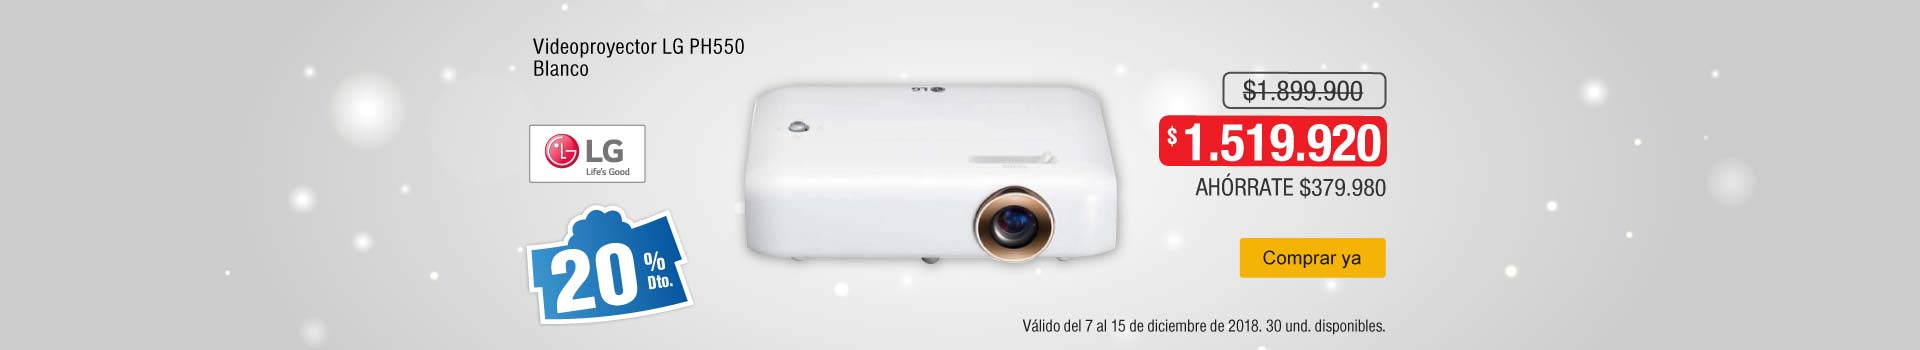 AK-KT-BCAT-1-computadores y tablets-videoproyectores-PP---LG-Videoproyector PH550-dic12